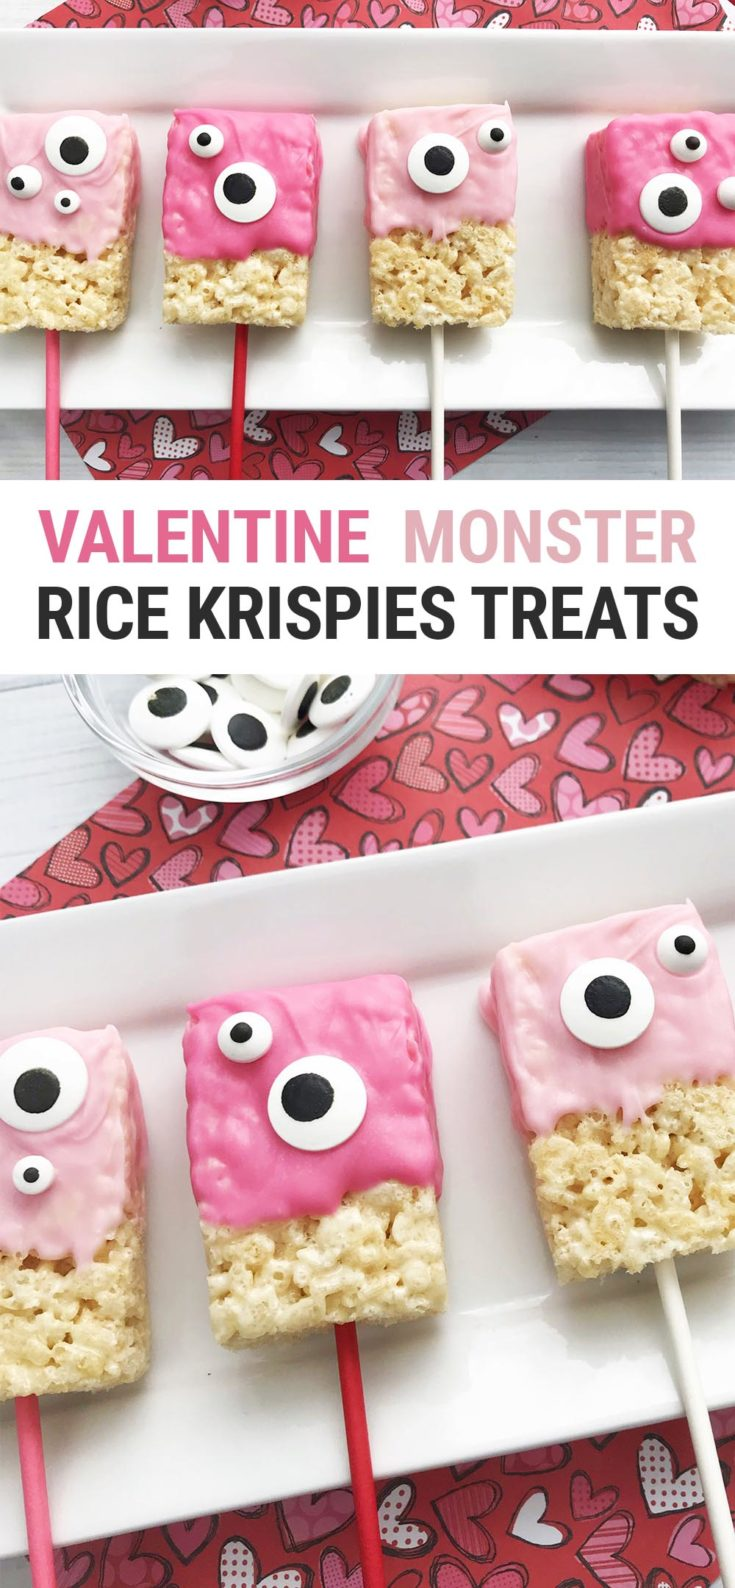 This cute halfway homemade monster Valentine Rice Krispie Treats recipe is the perfect Valentine's Day party kids treat! The Rice Krispies Treats are store-bought, so you can make these quick and easy! #ValentinesDay #kids #recipes